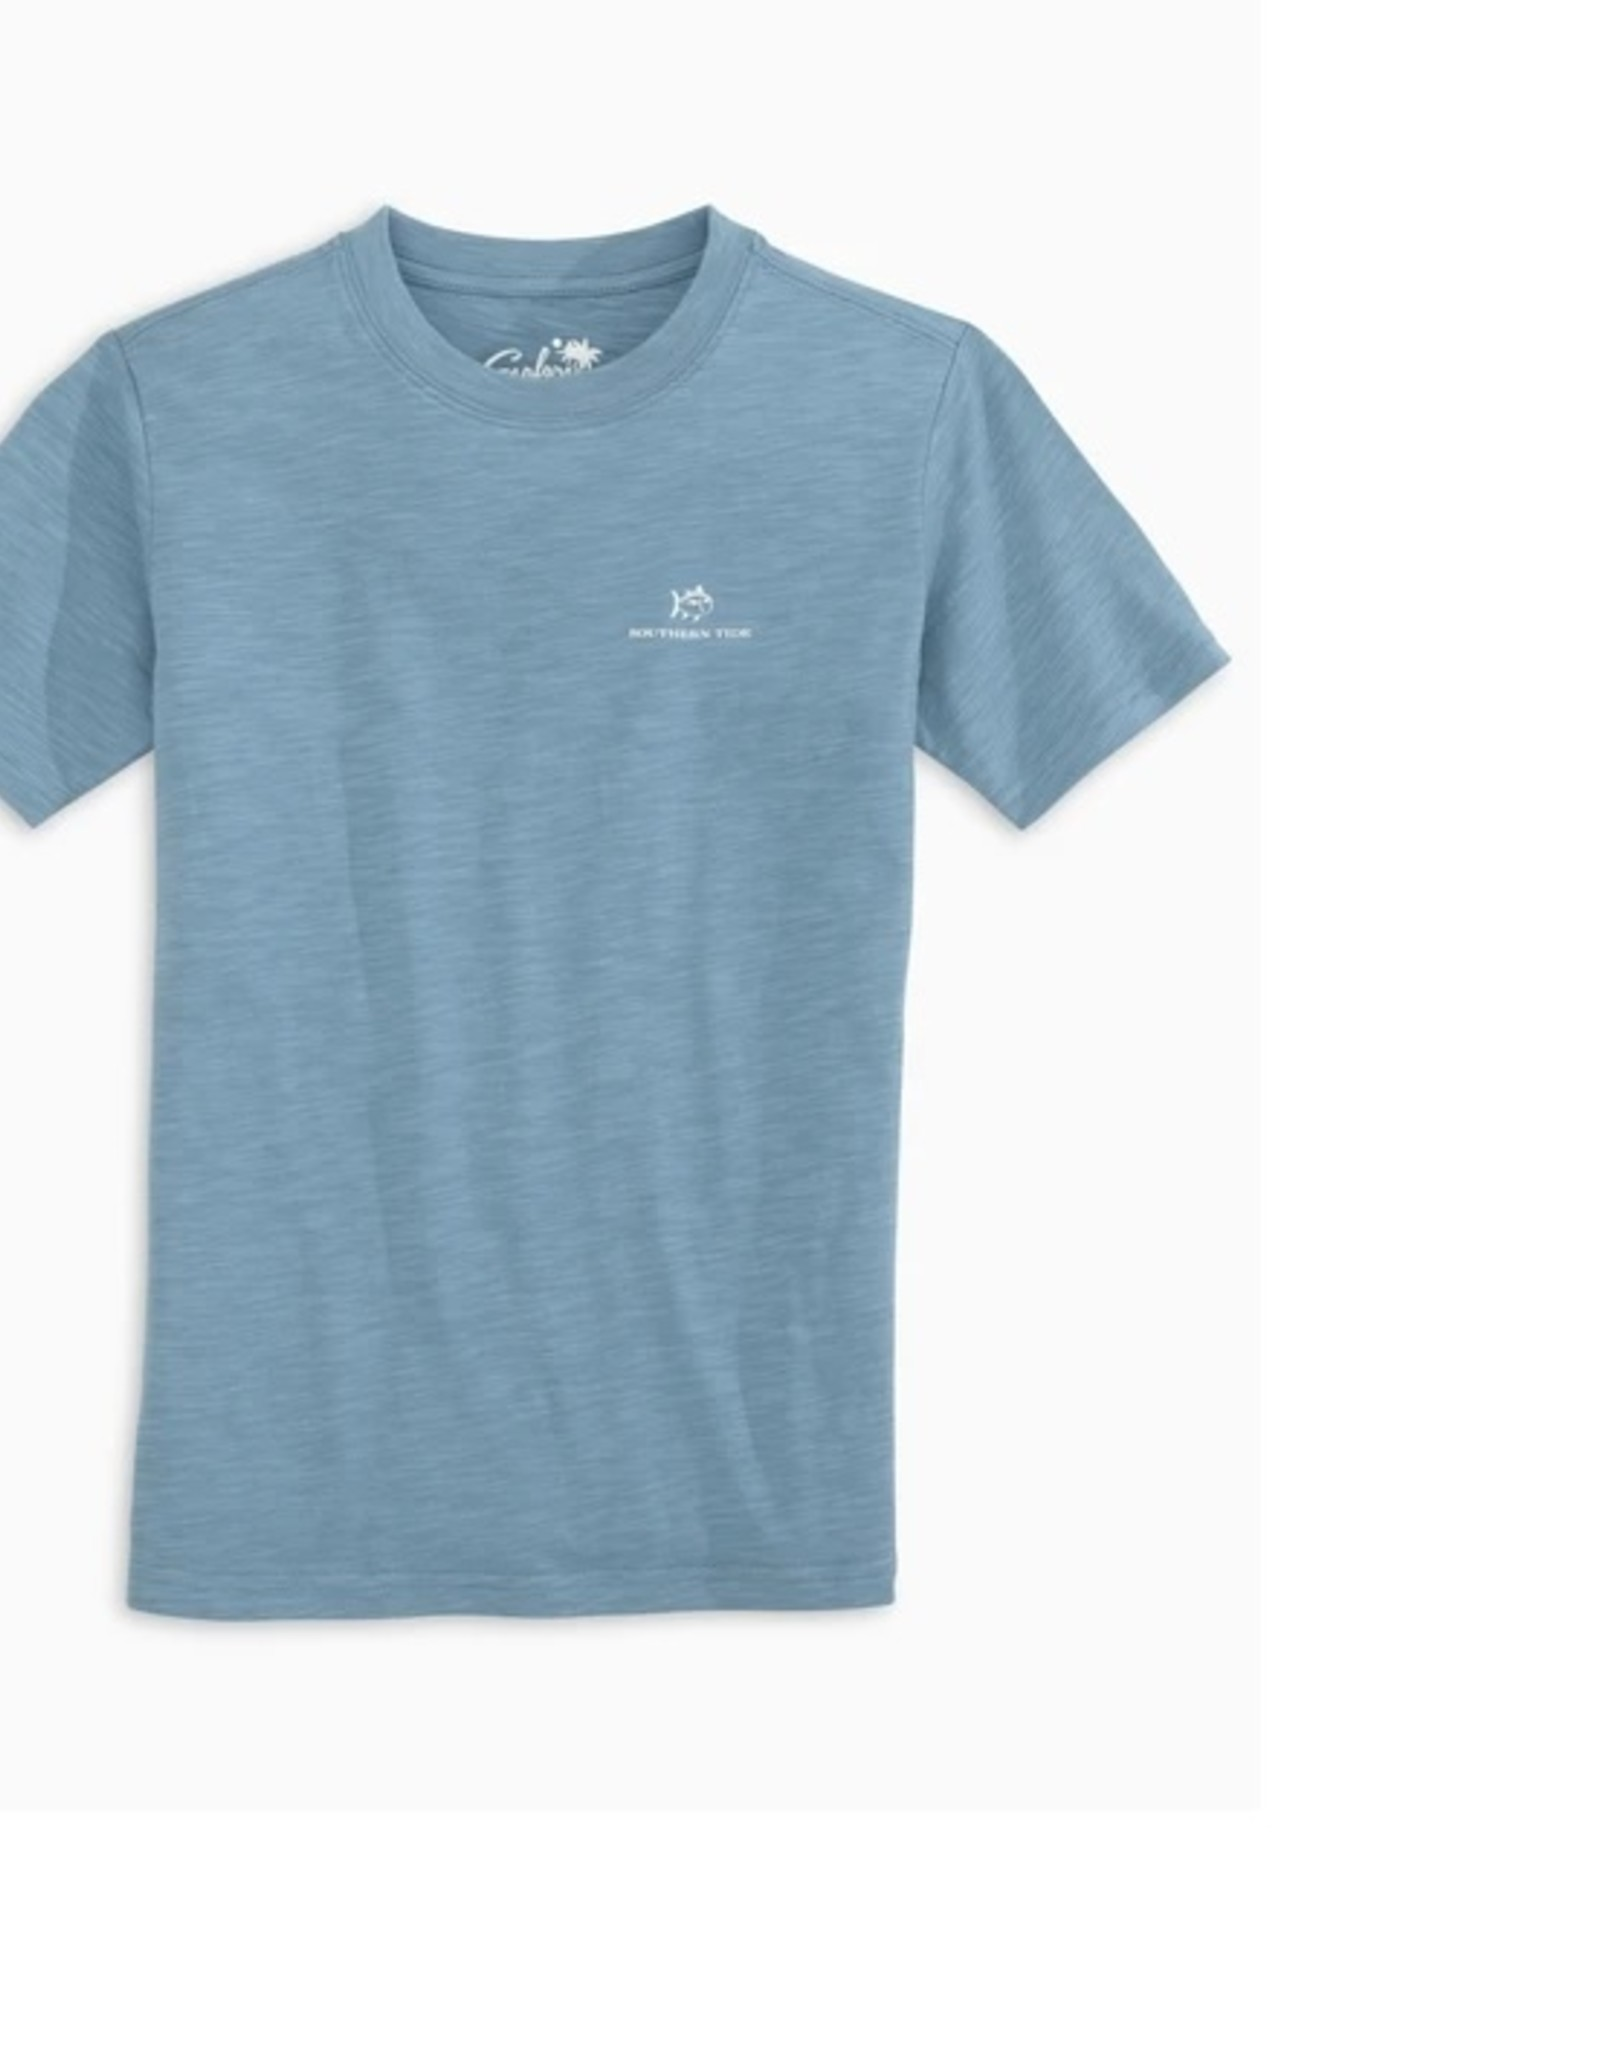 Southern Tide Blue Shadow Tully Sunfarer Tee